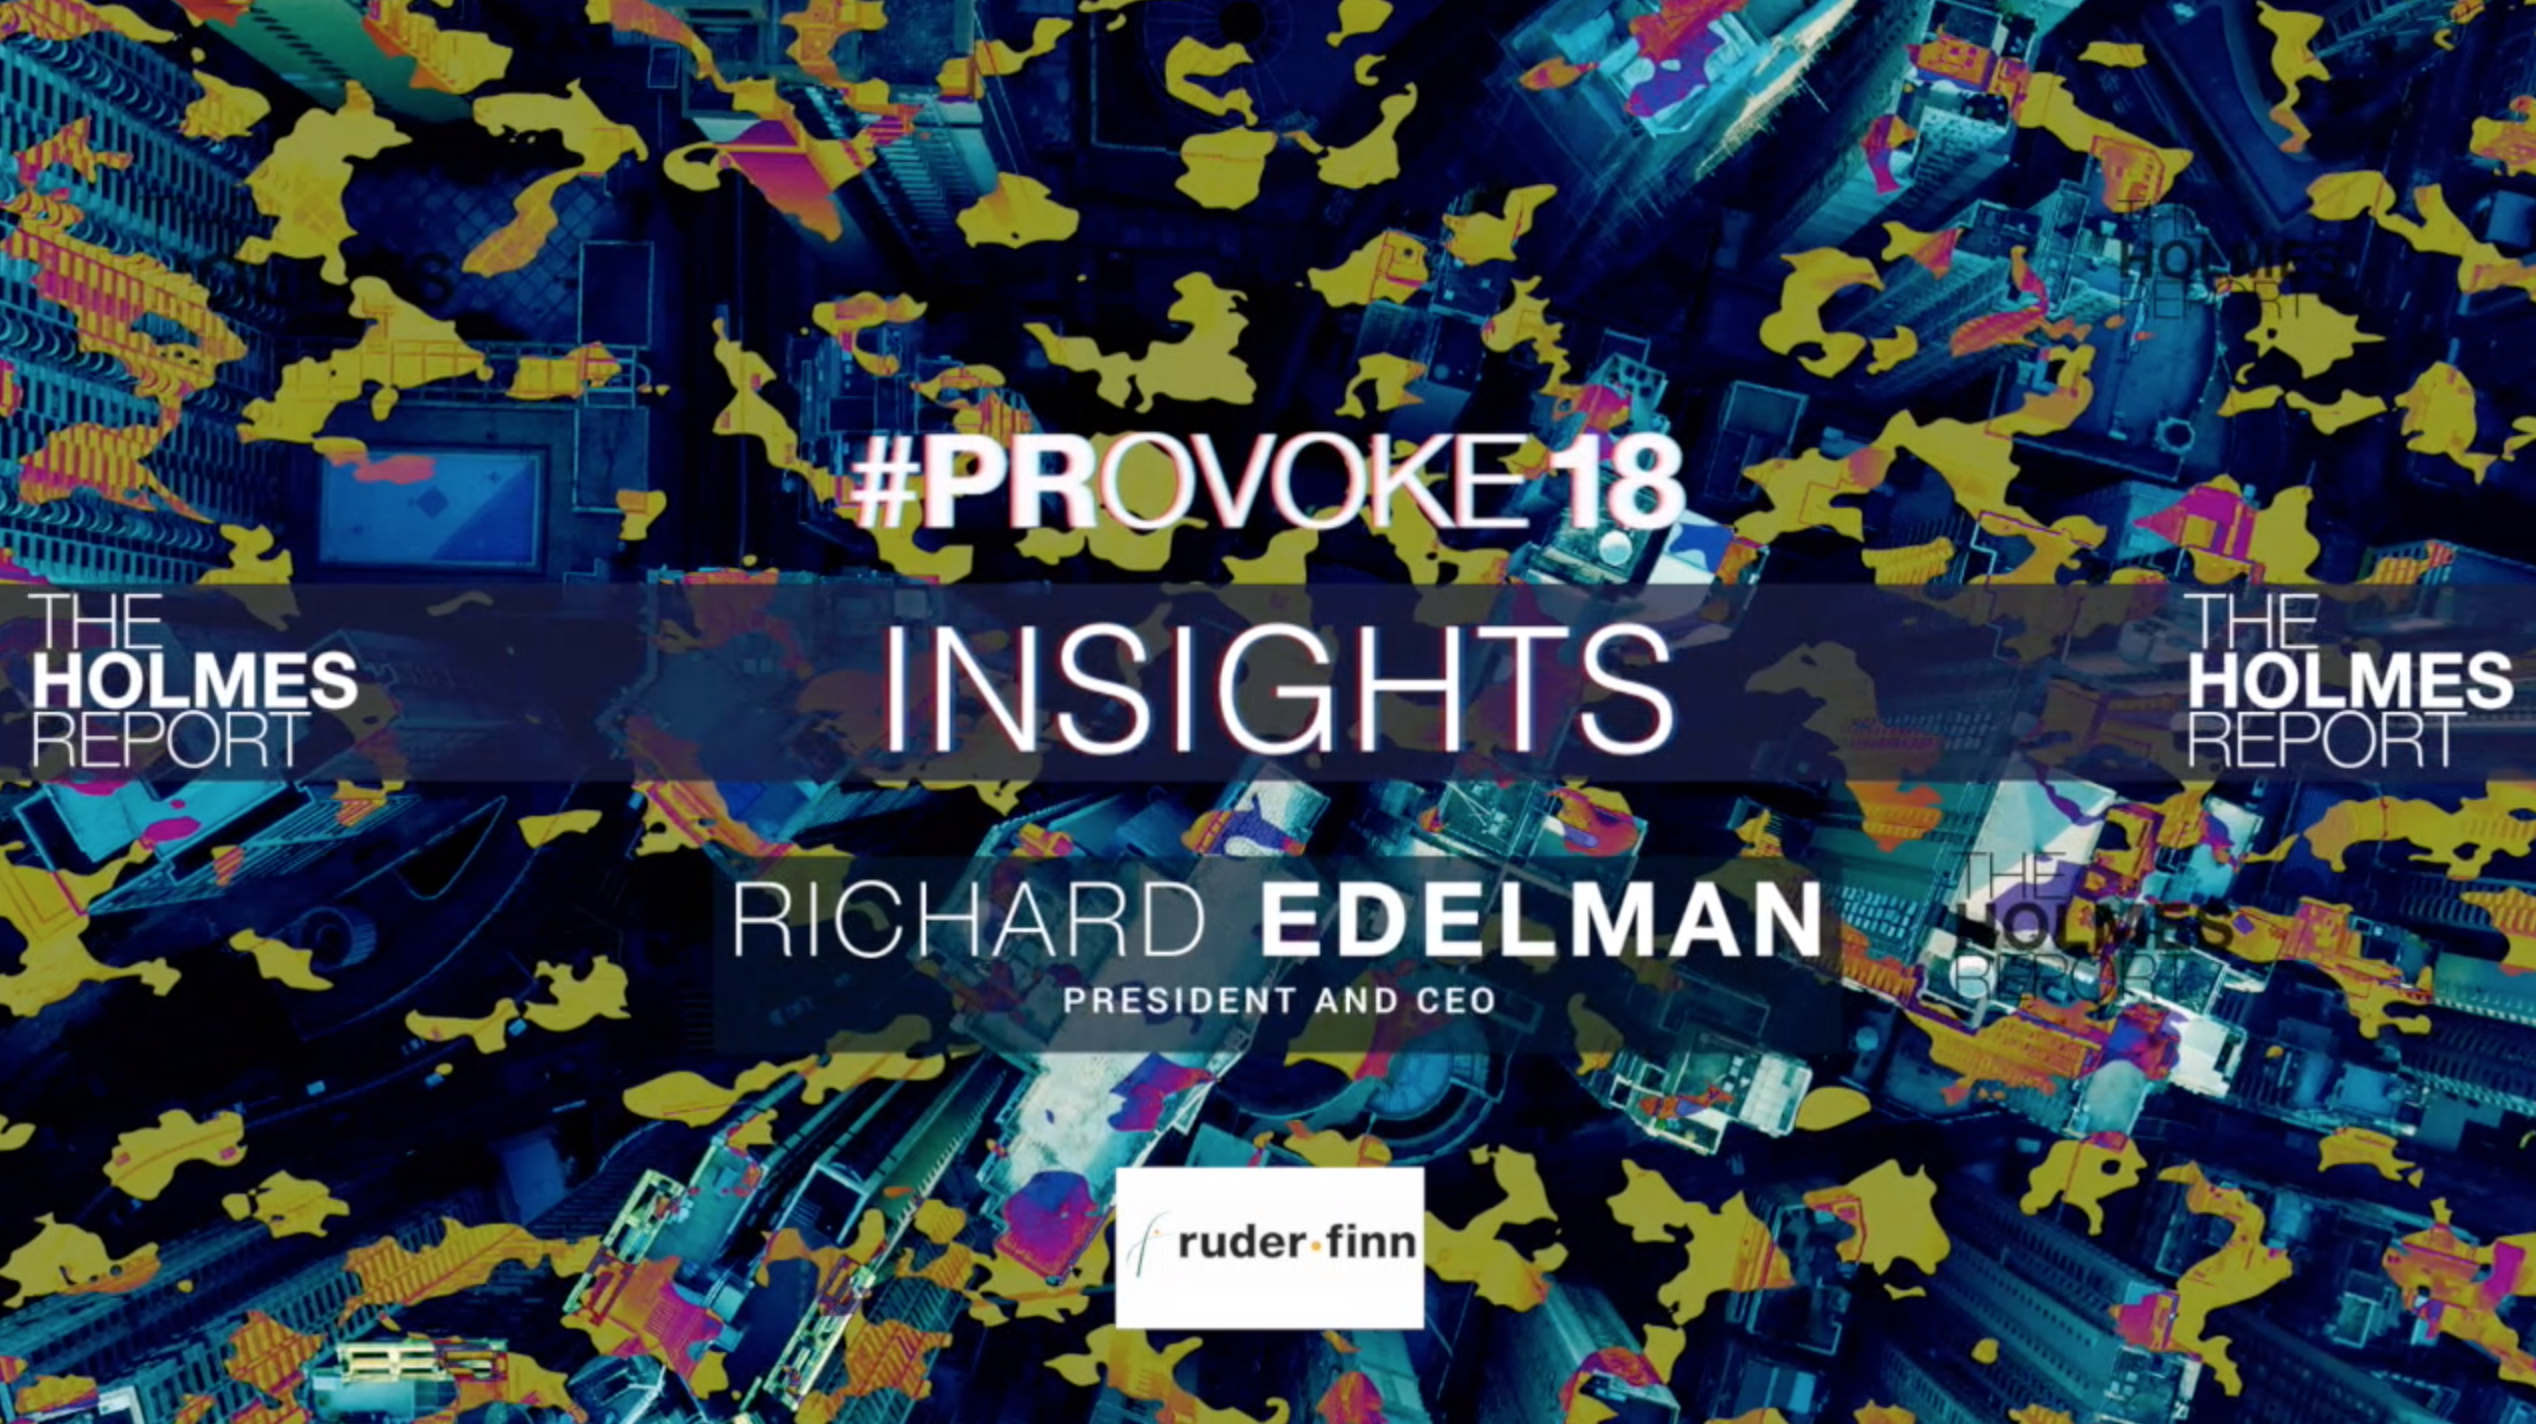 Video: PRovoke18 Insights From Richard Edelman